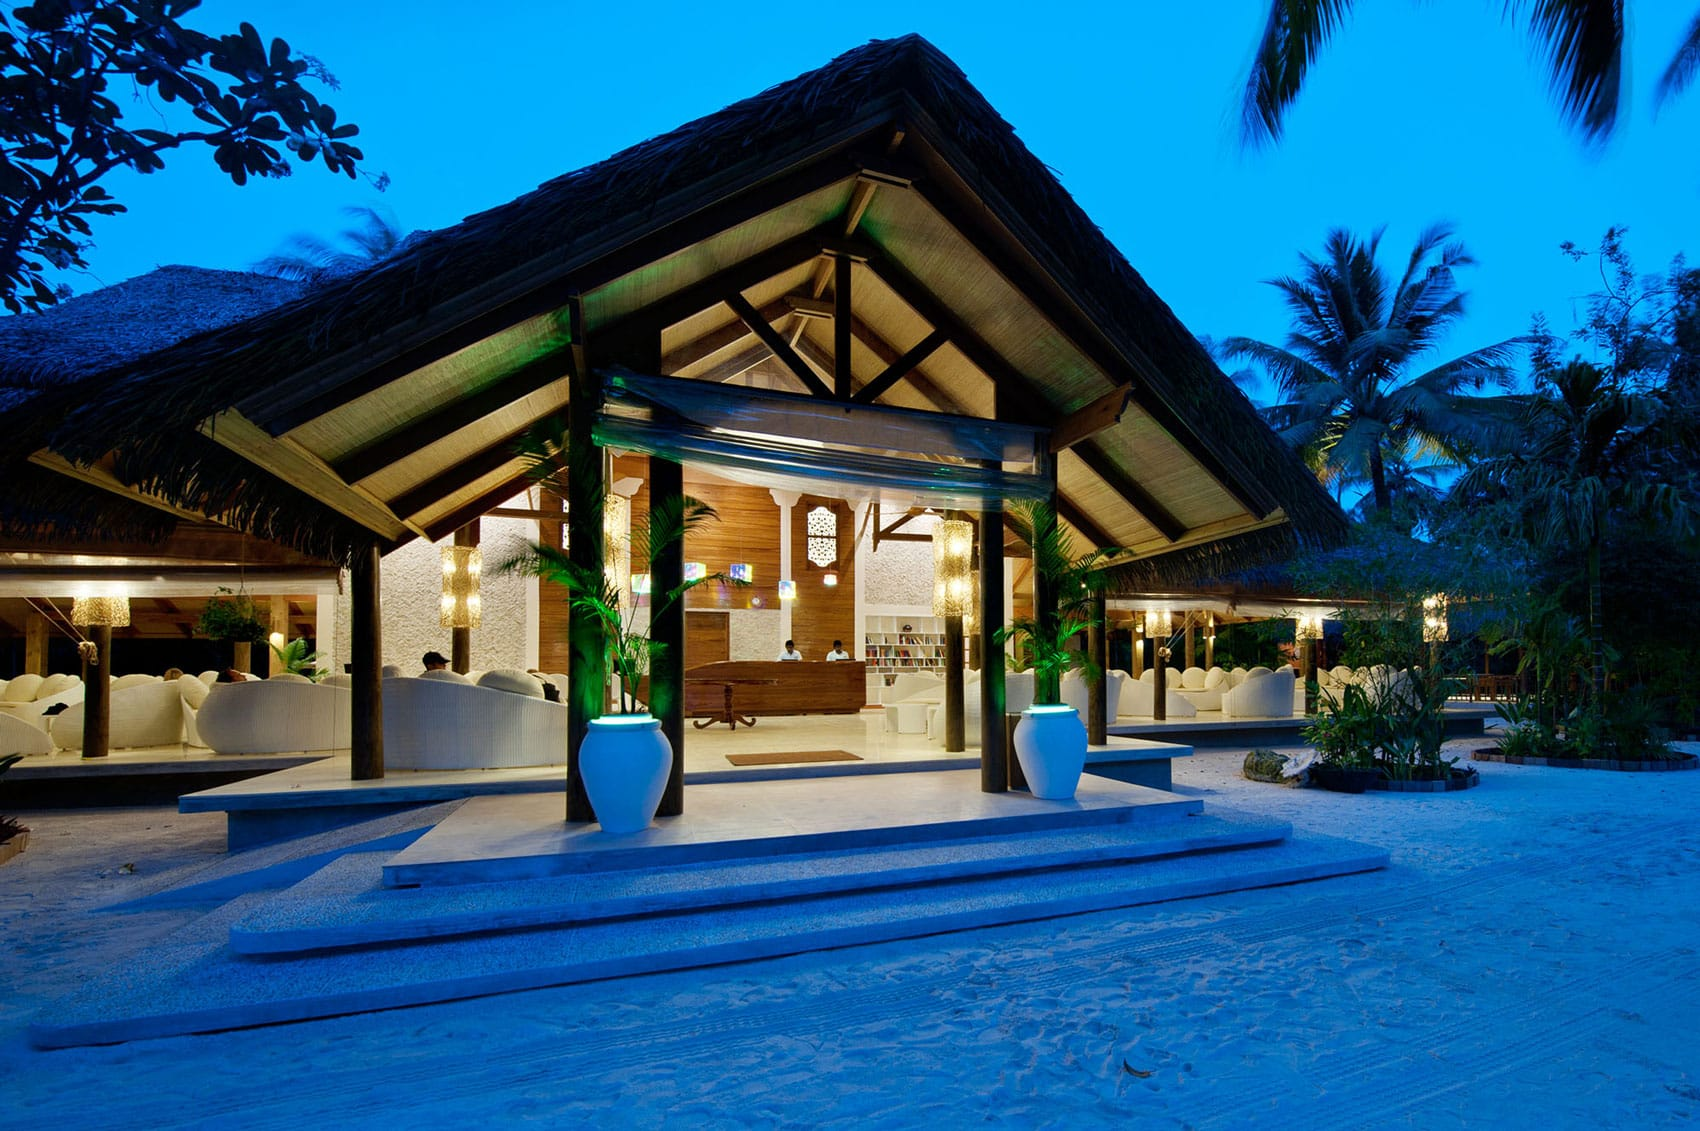 Kuramathi Island Resort на Мальдивских островах от Harper Architecture, HQ architecture, HQarch, HQ arch, high quality architecture